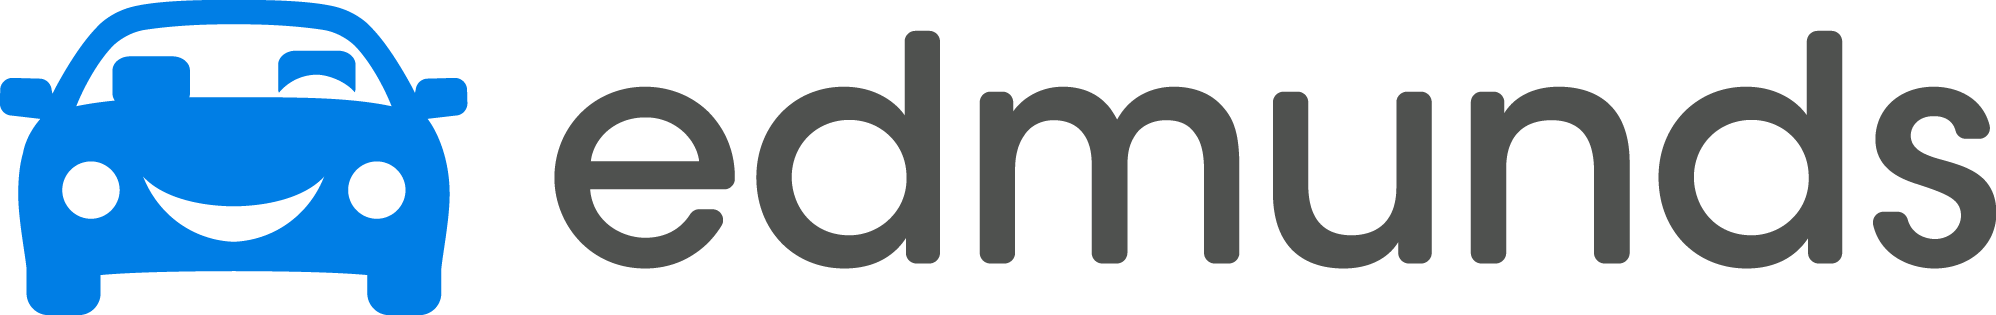 File:Edmunds Logo.png.